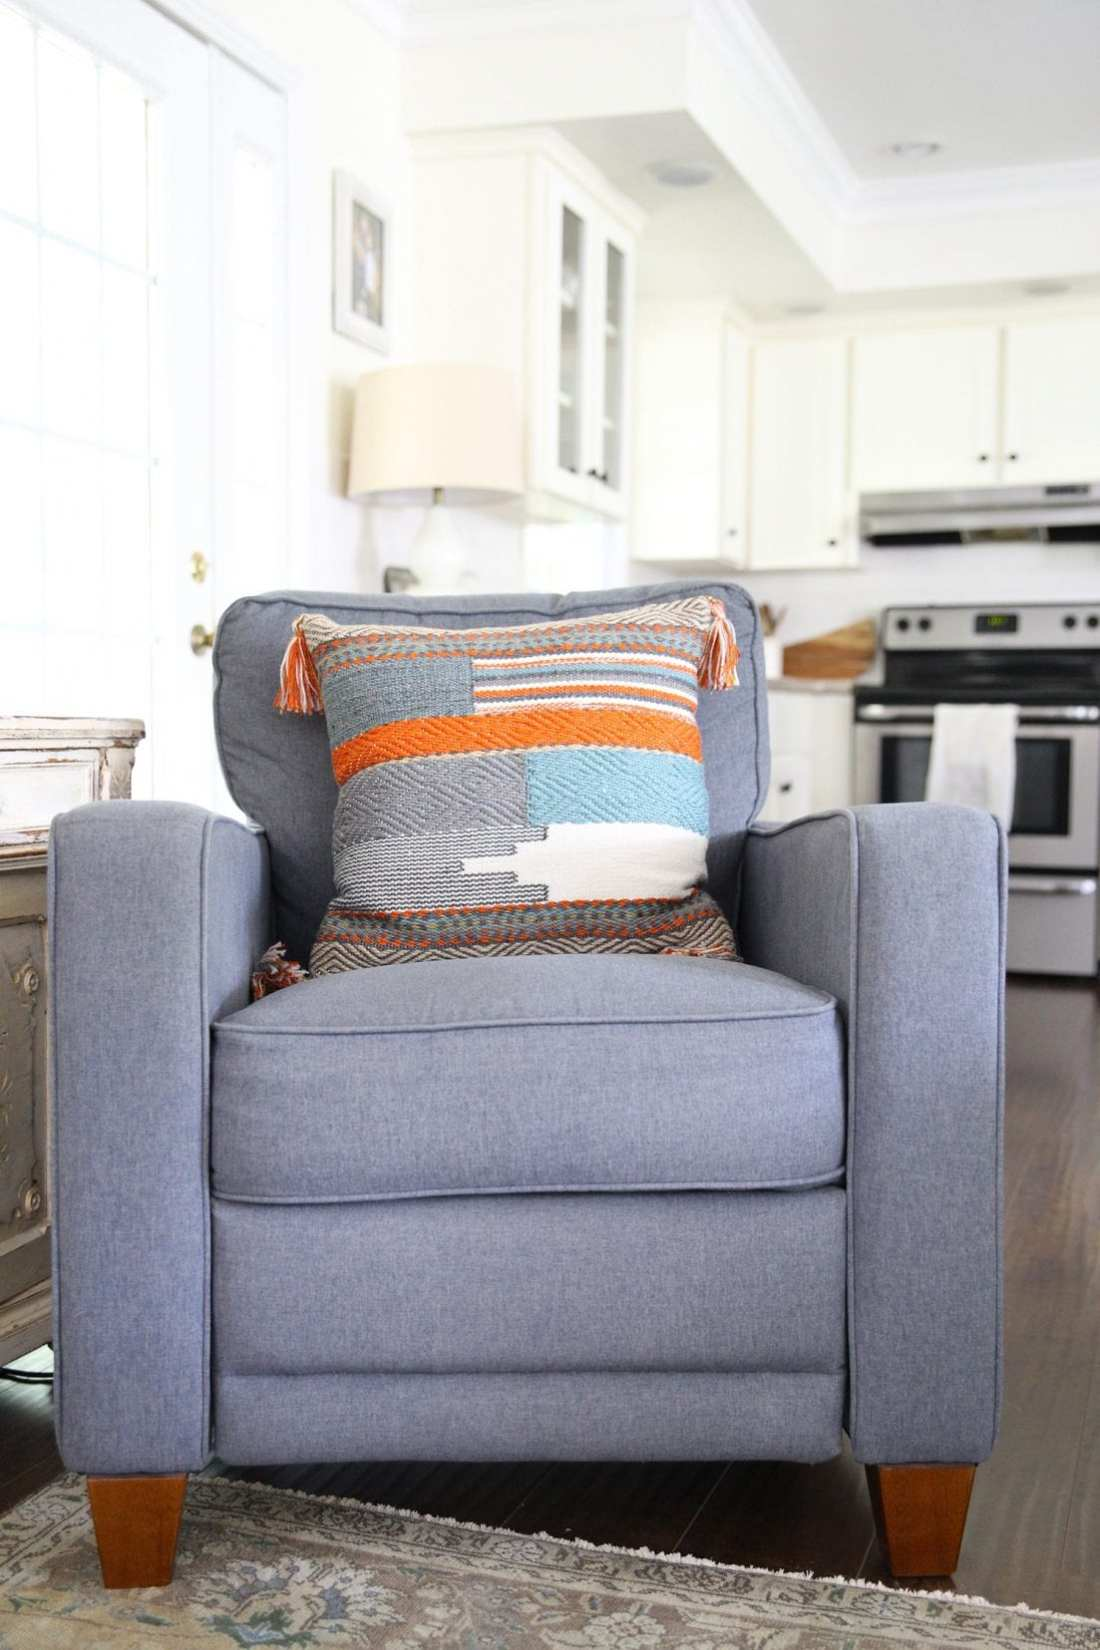 10 foolproof decorating tips - pillows